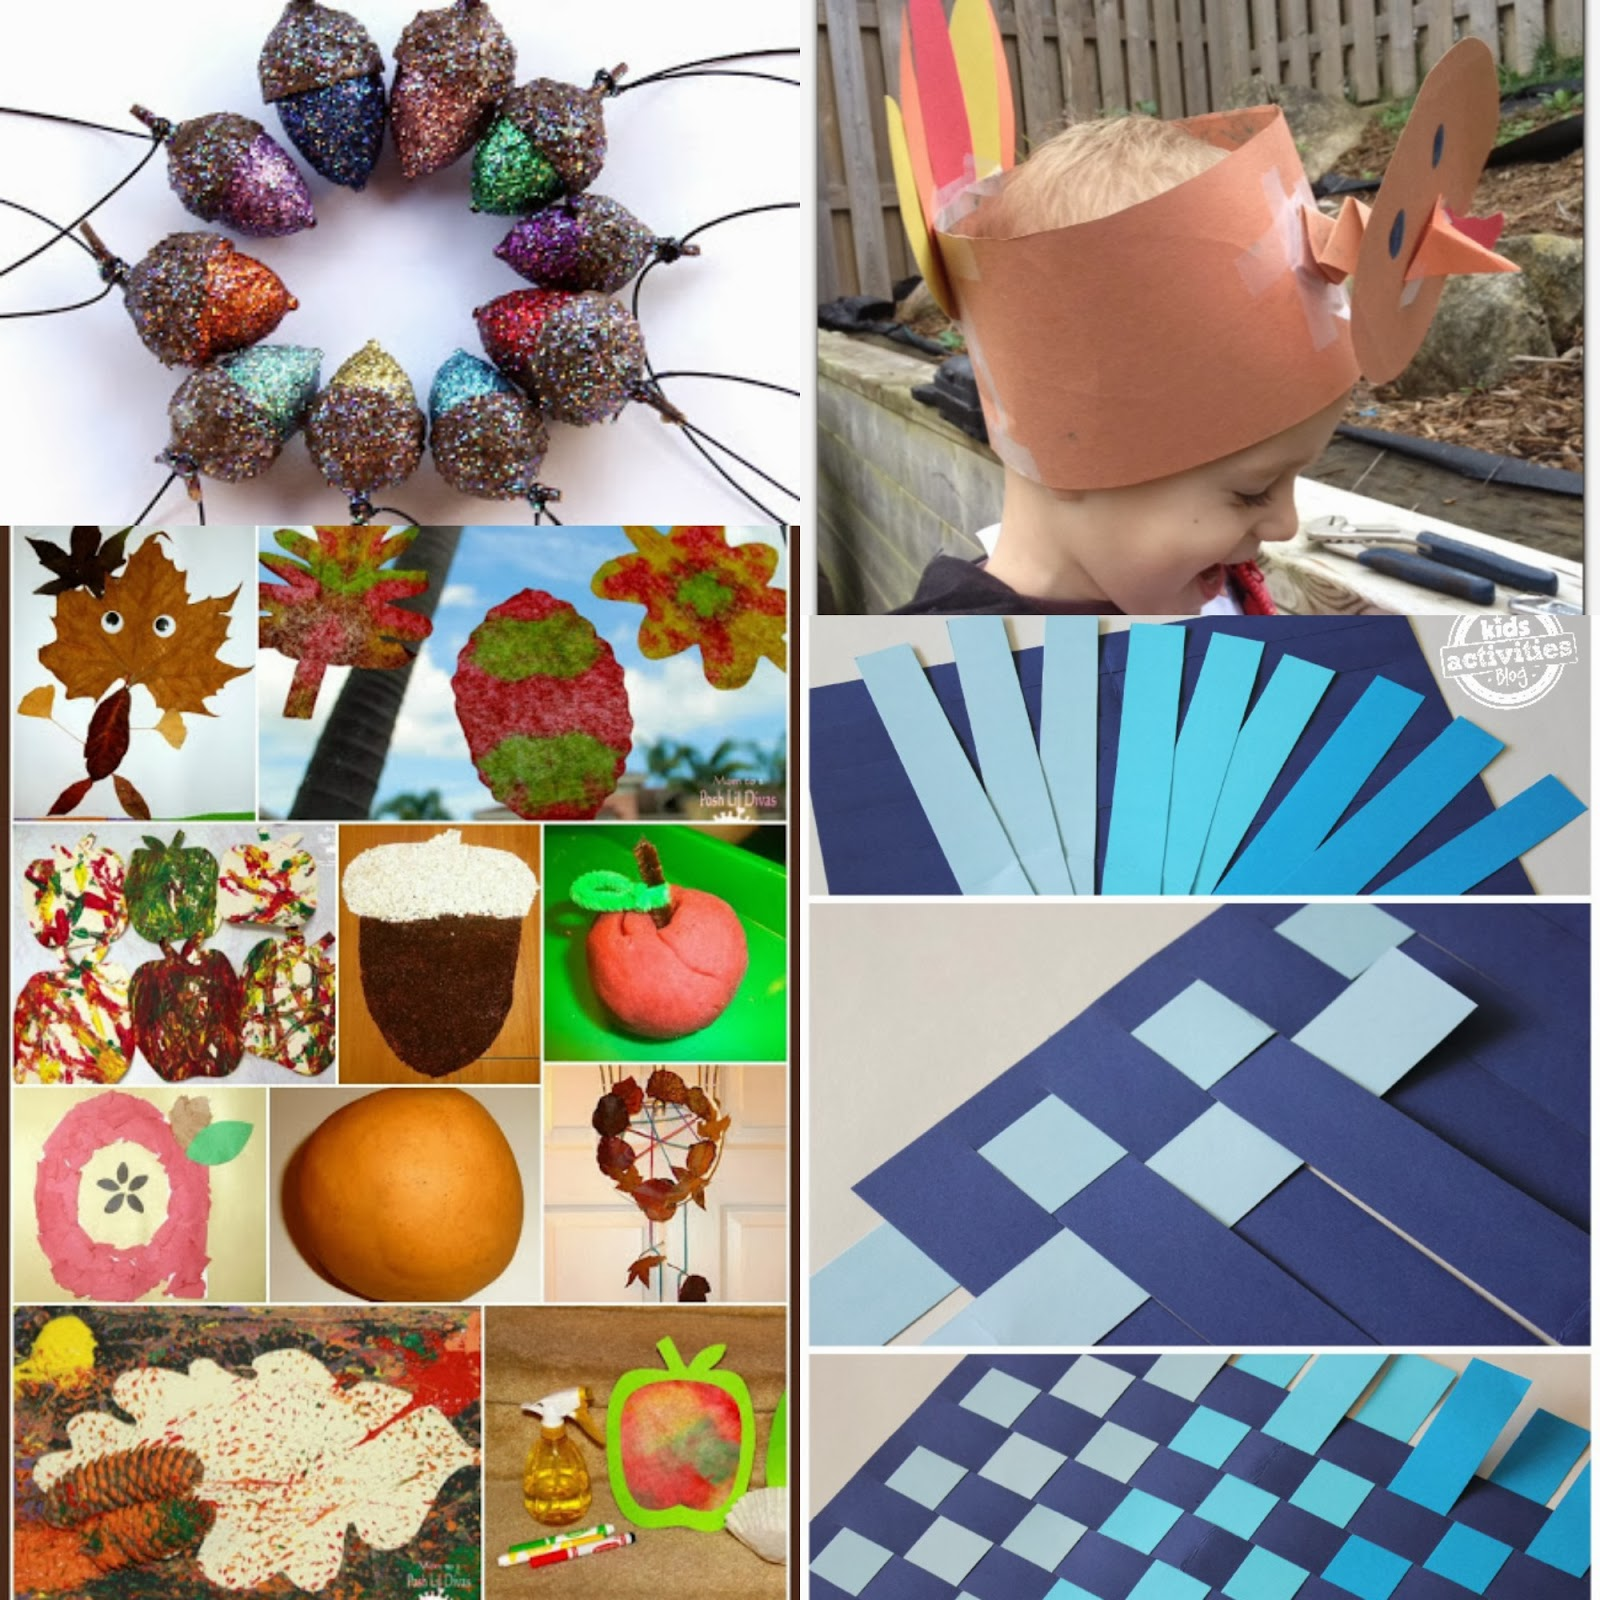 Click any of the links below for the full post for Nature crafts for kids